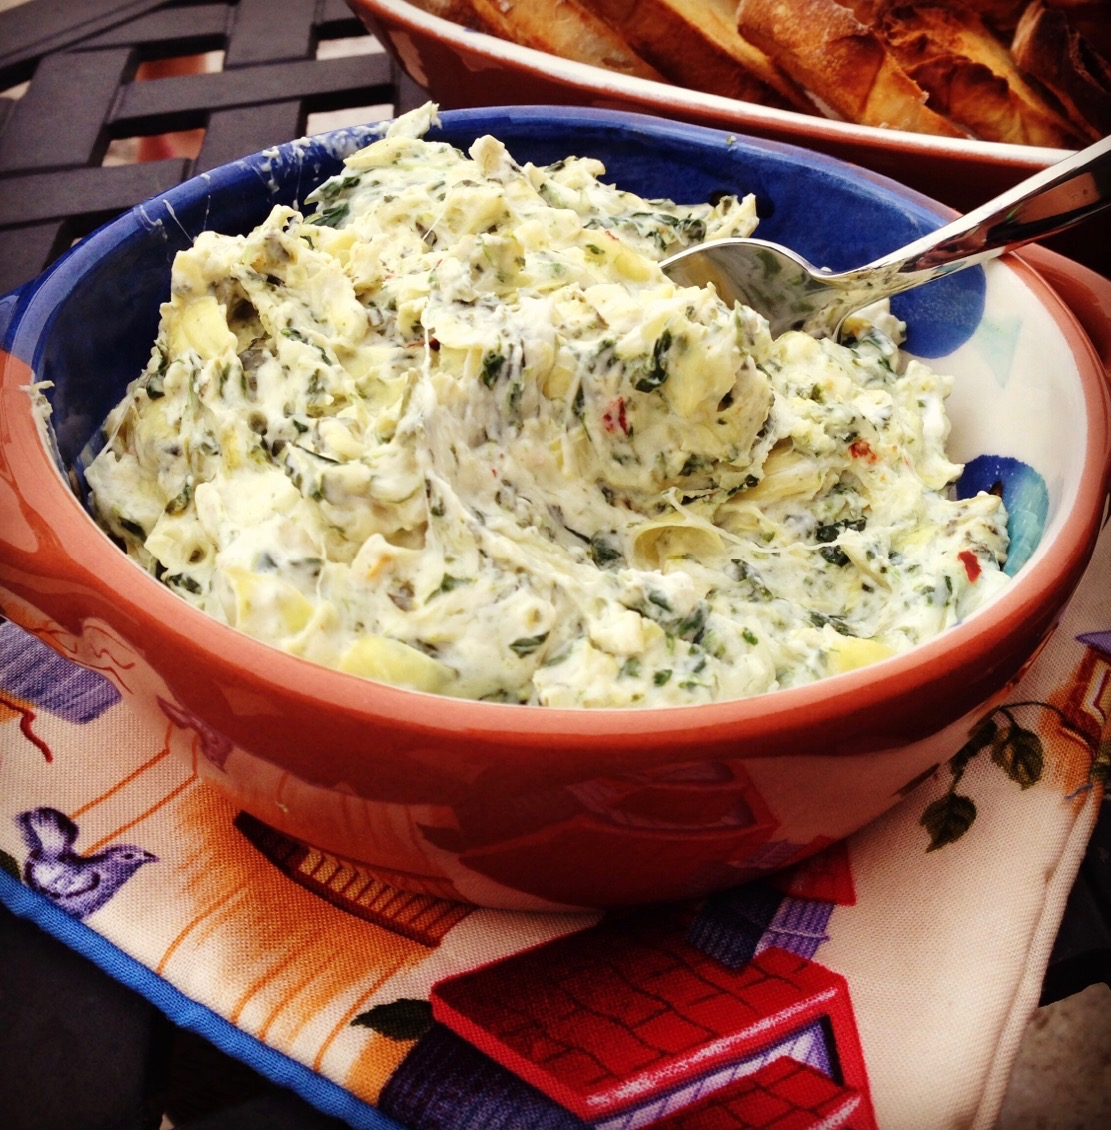 My Head Says Gym but my Heart Says Spinach Artichoke Dip!!!